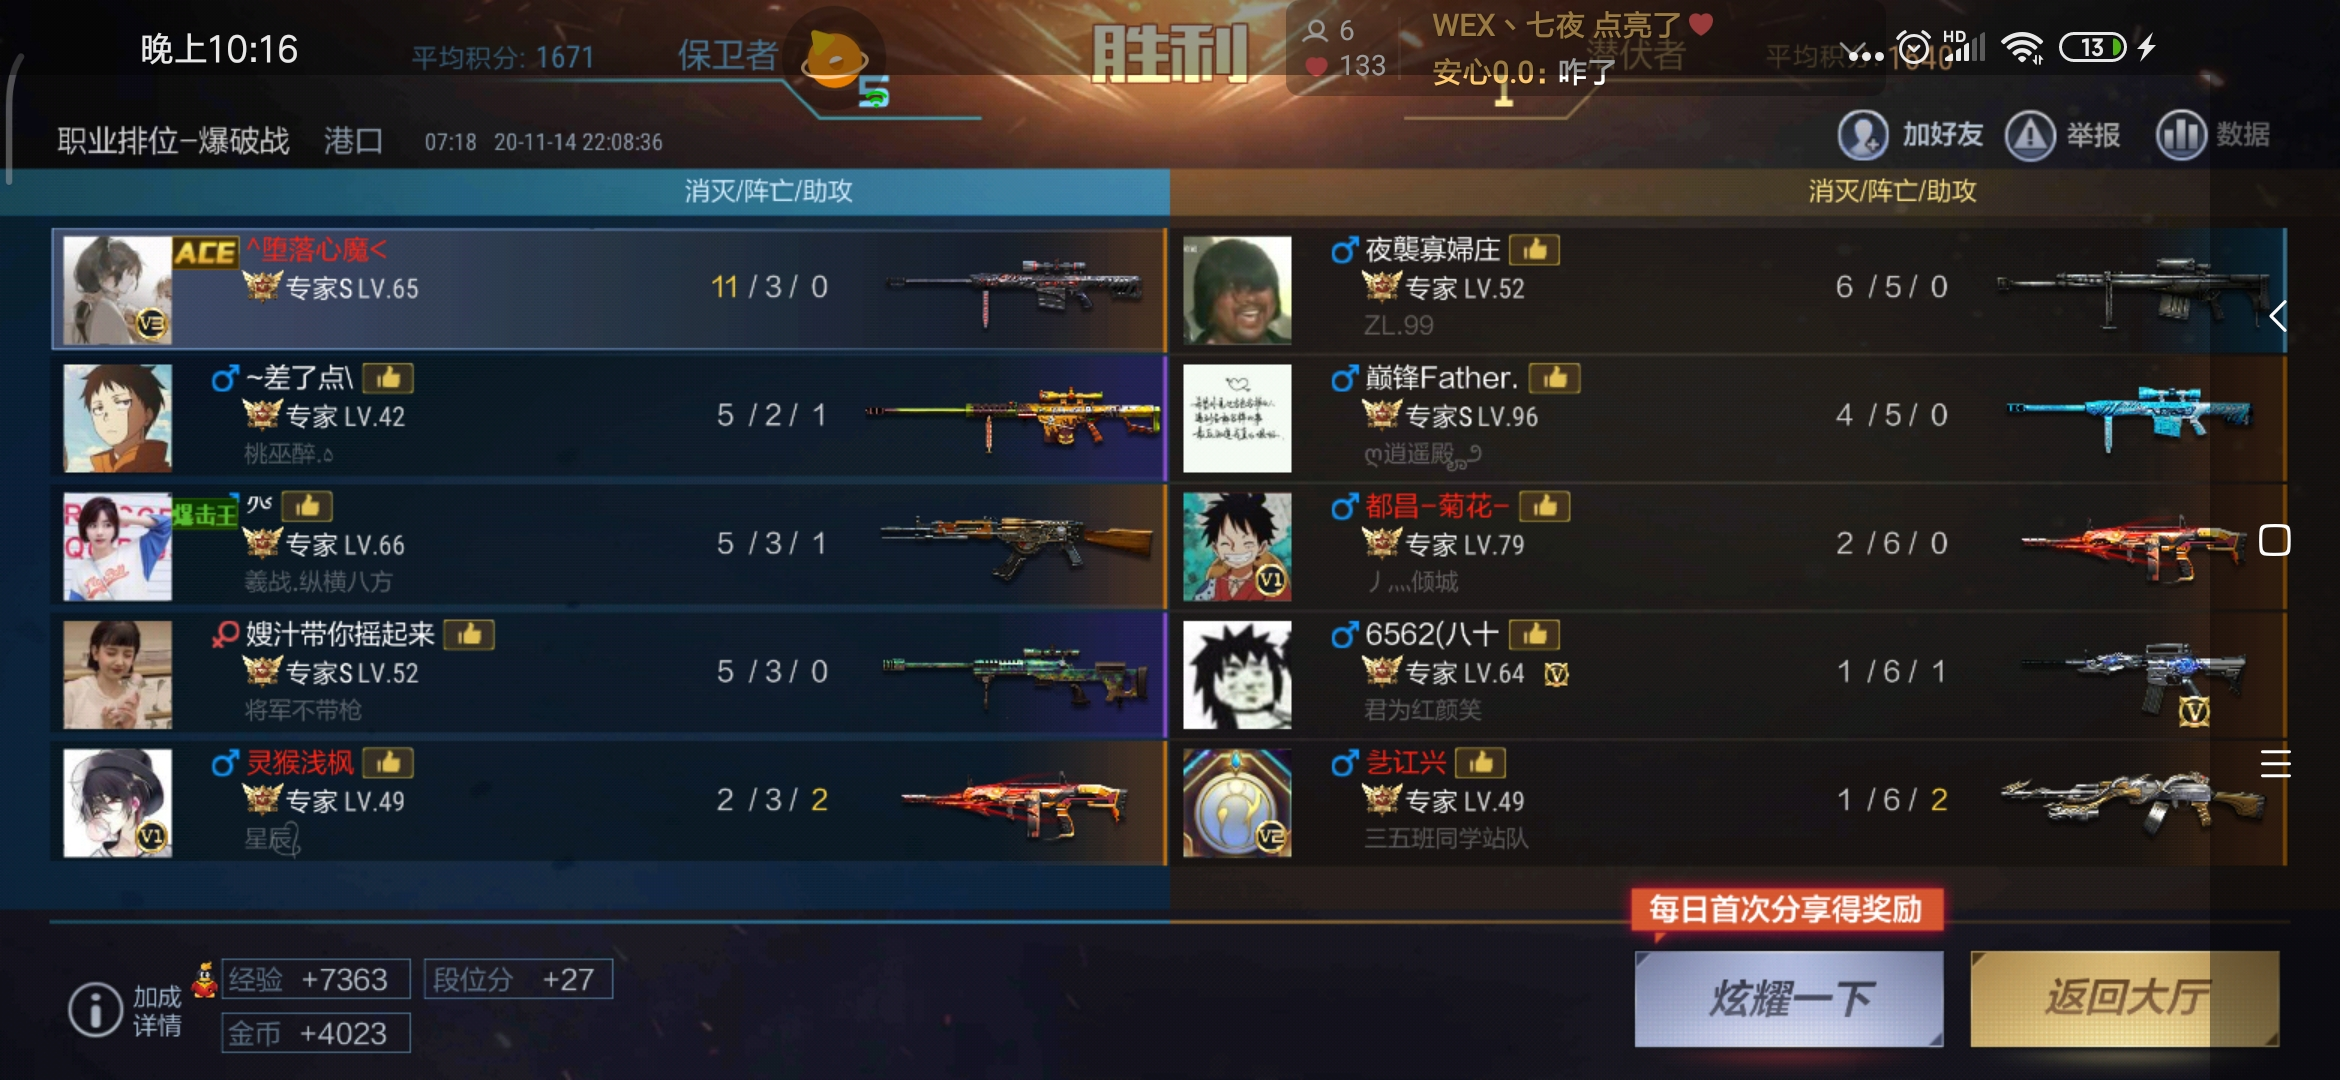 Screenshot_2020-11-14-22-16-44-931_com.tencent.tmgp.cf.jpg